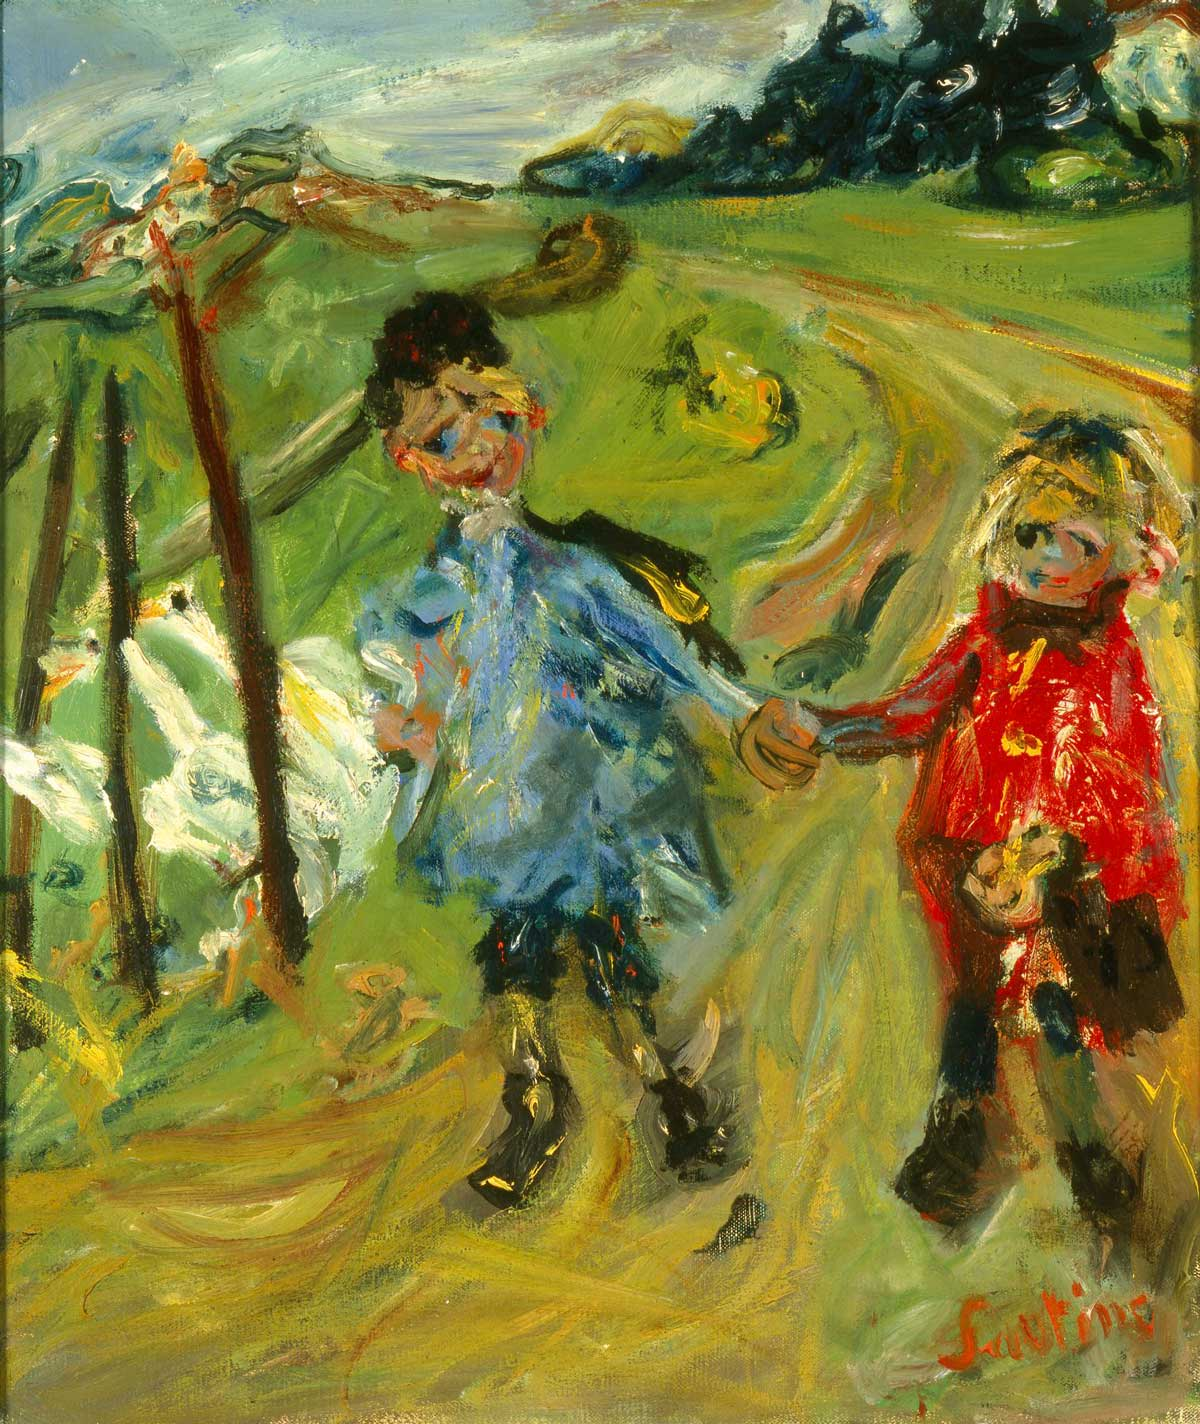 Two young children walking in a field